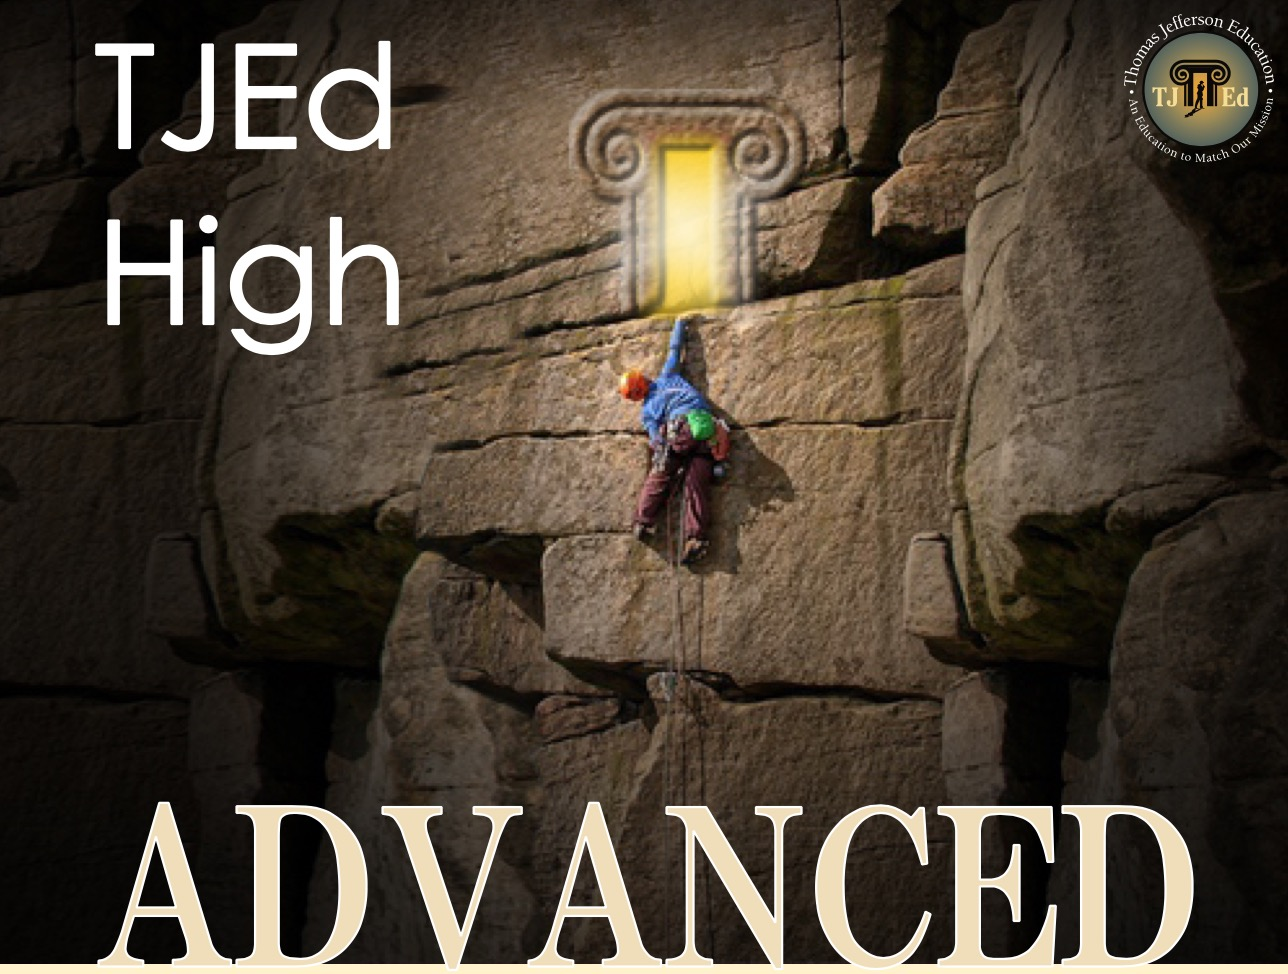 TJEd High Advanced